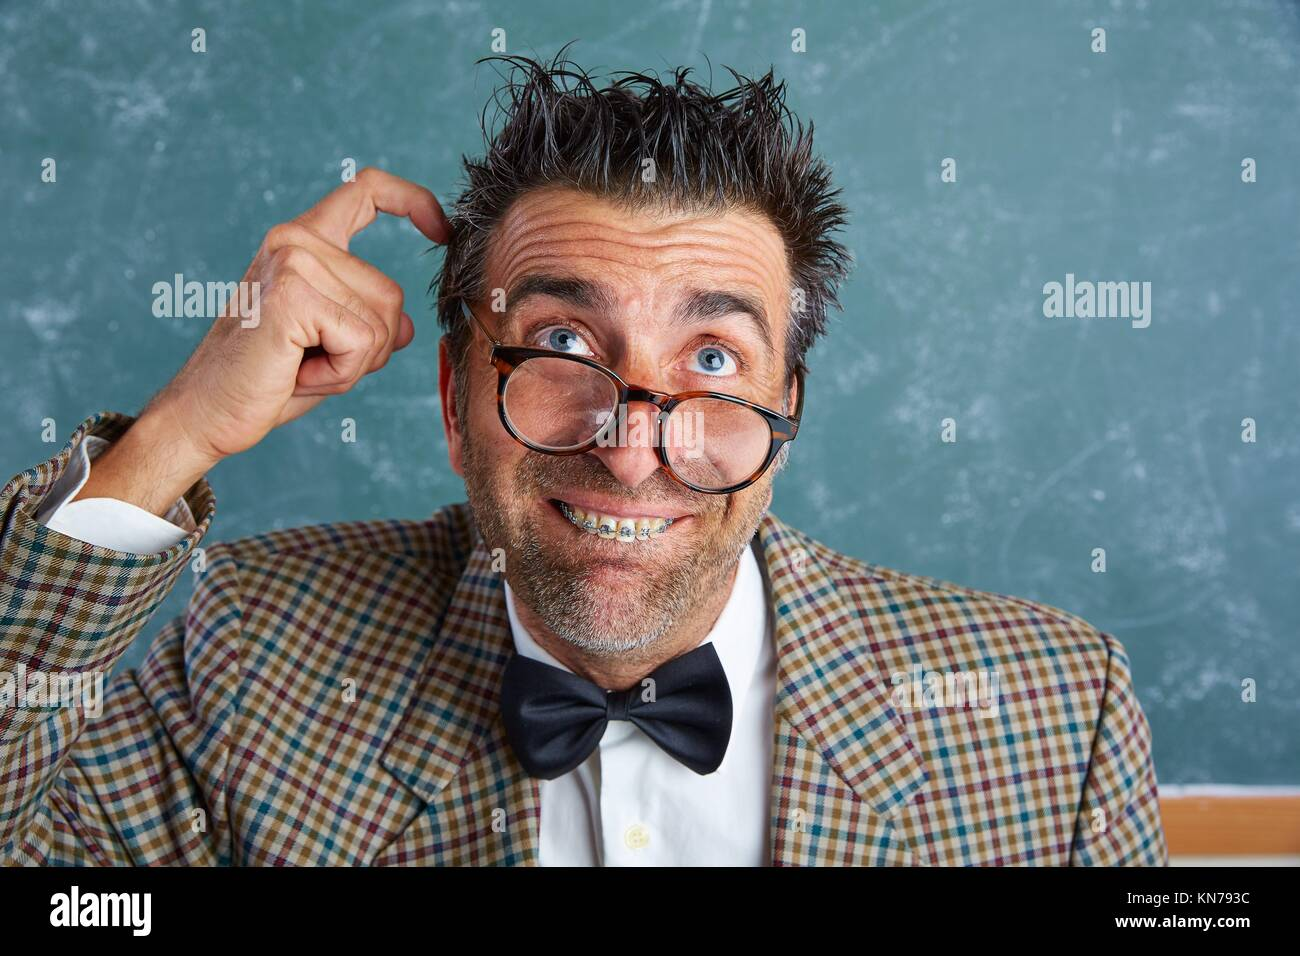 c349be72af7c Nerd silly retro teacher man with braces funny thinking doubt expression.